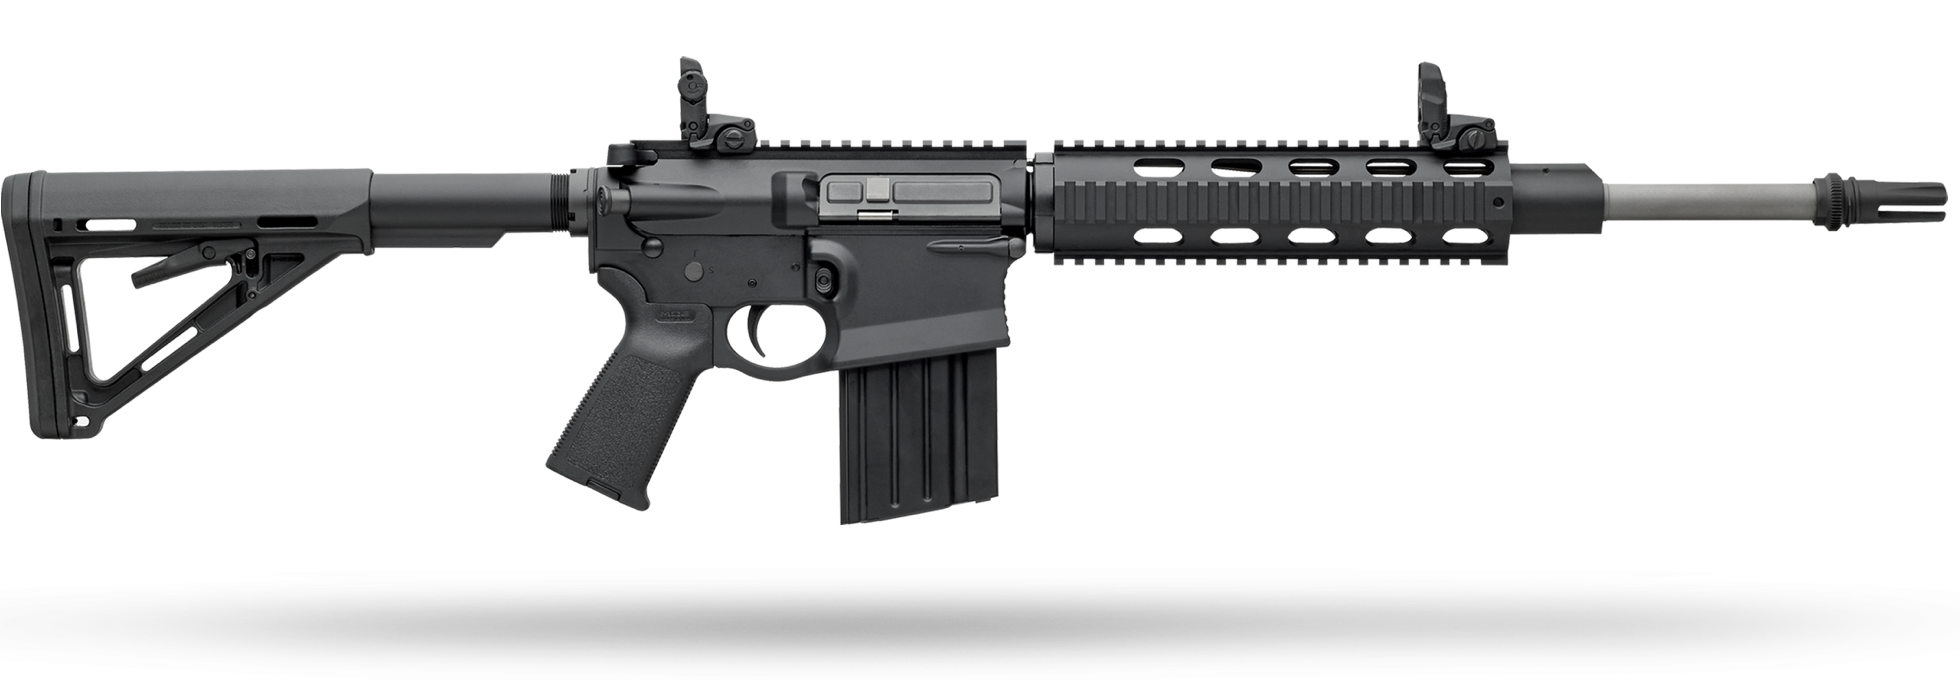 DPMS GII .308: Would You Hunt With It?